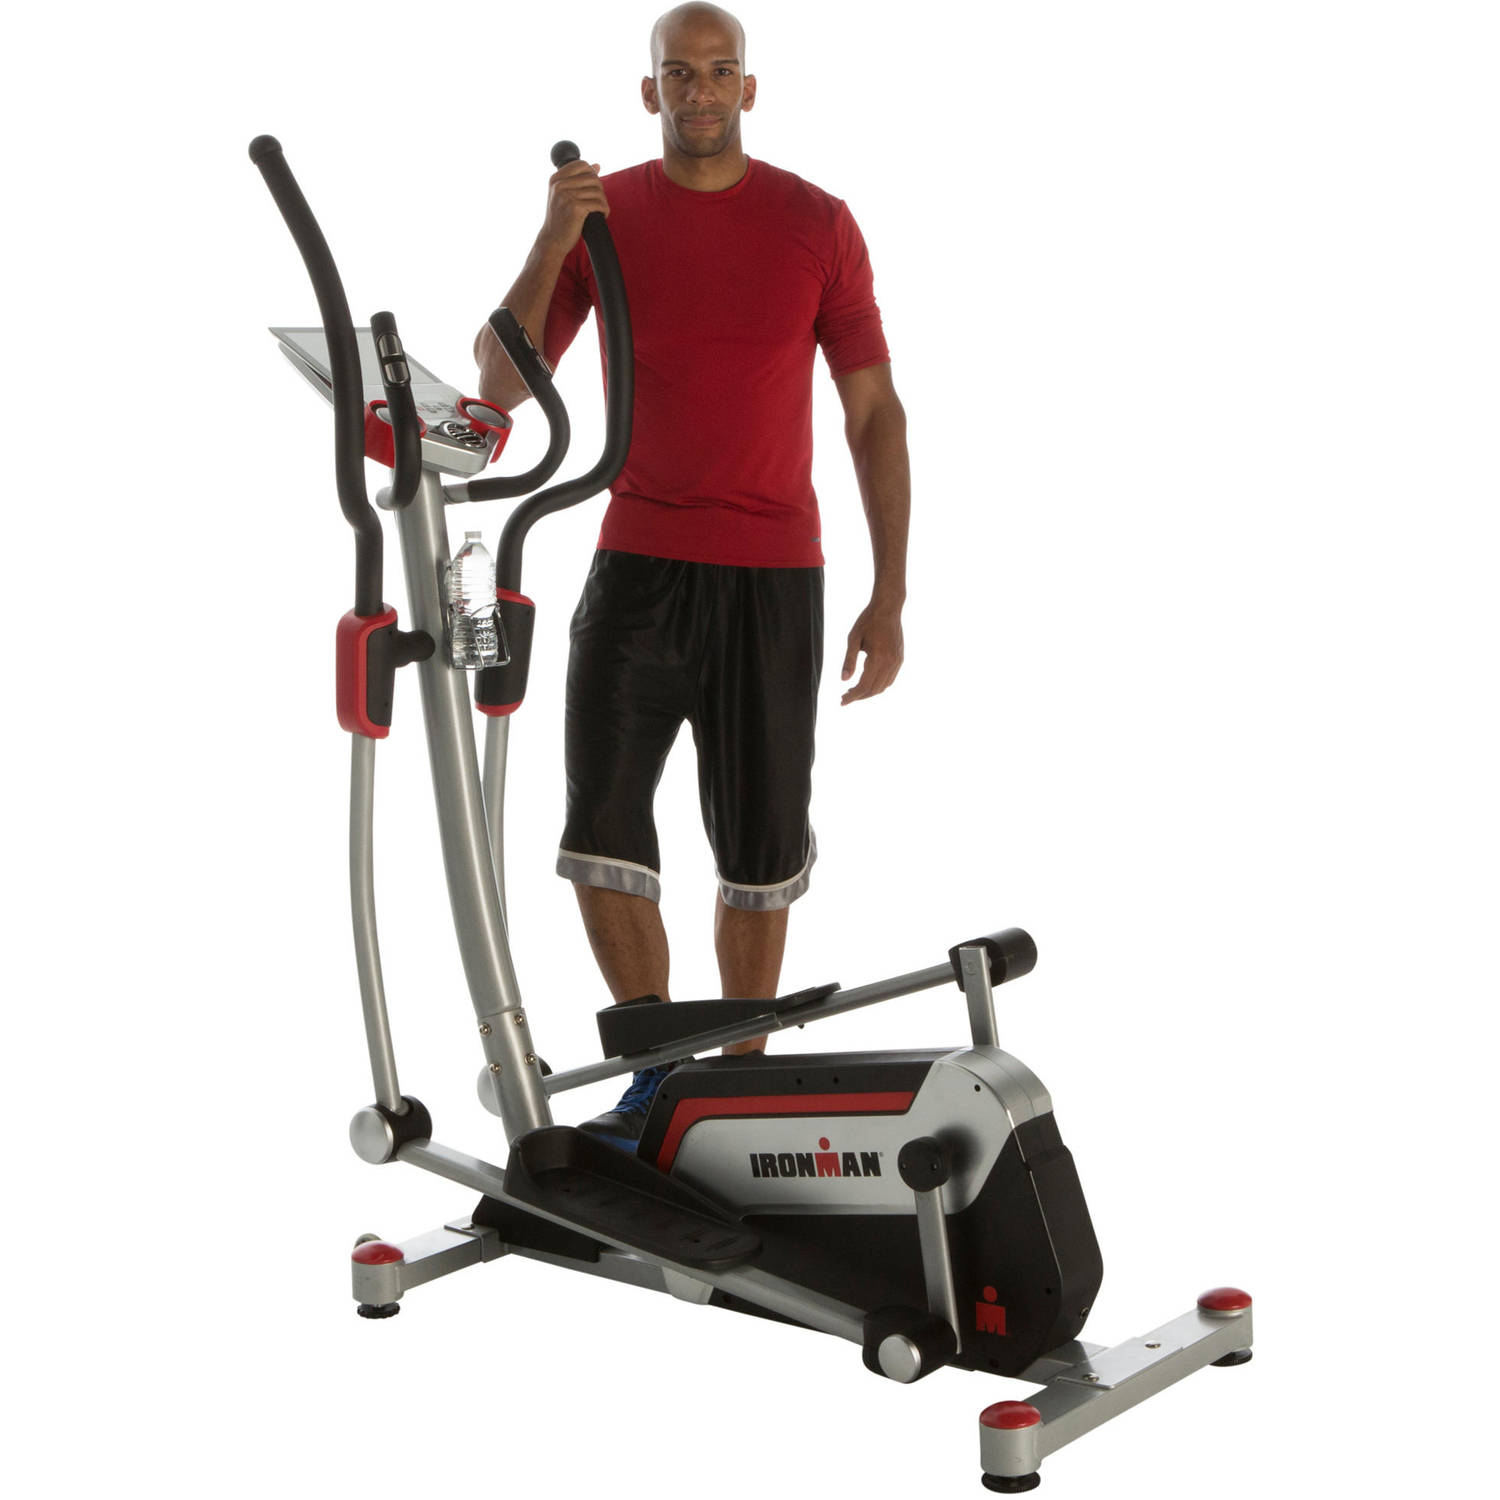 "Ironman H-Class 610 Smart Technology Elliptical Trainer with Bluetooth, 18"" Stride and Heart Rate Control"